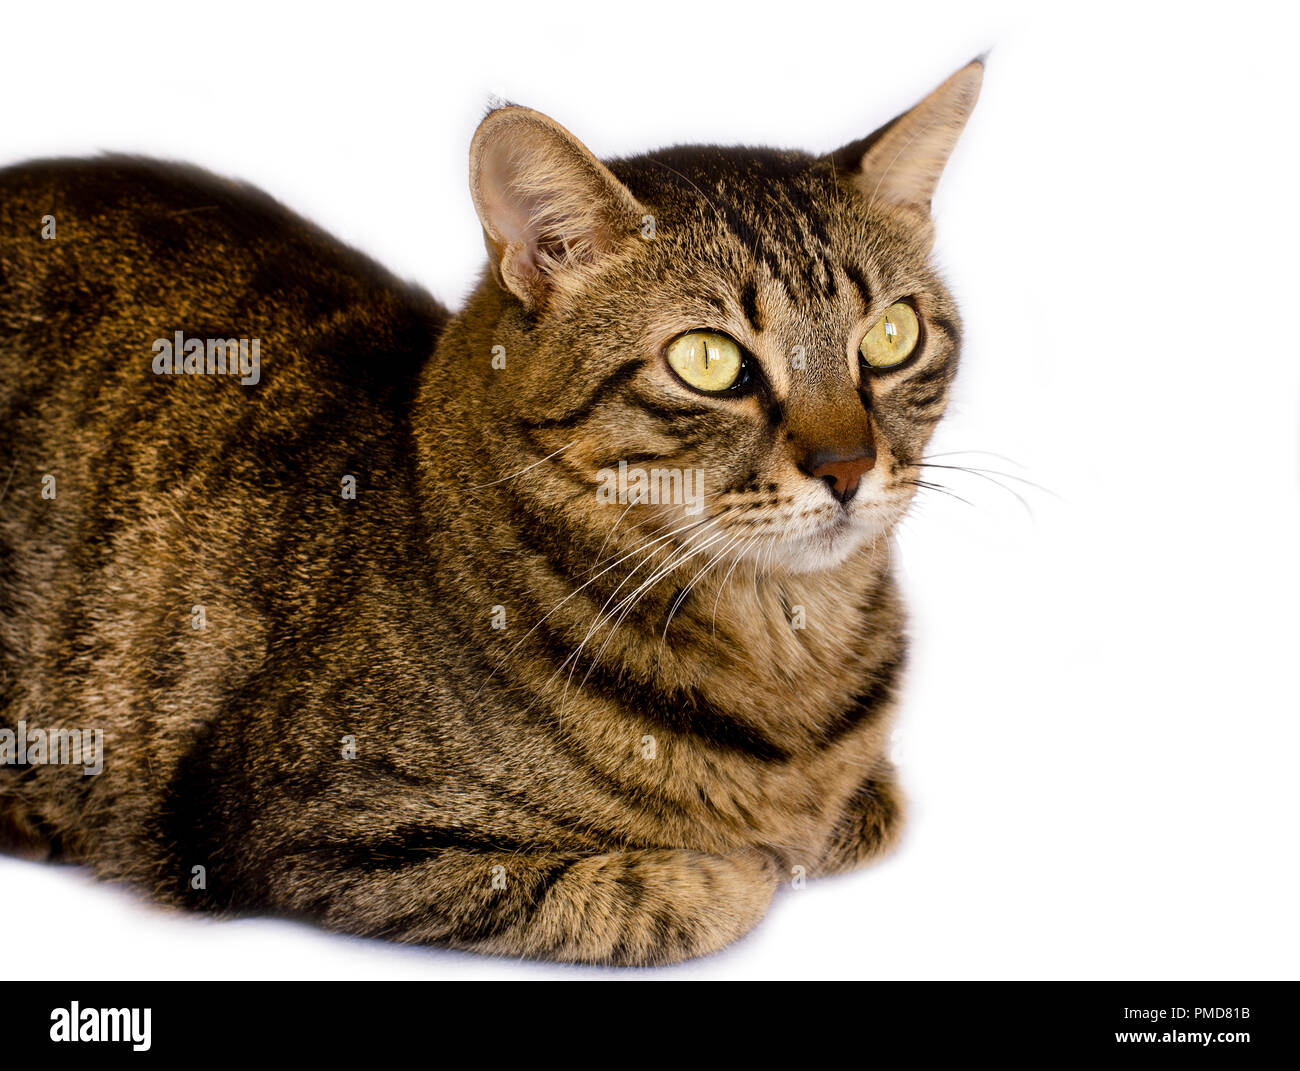 A striped cat on a white background looks aside Stock Photo